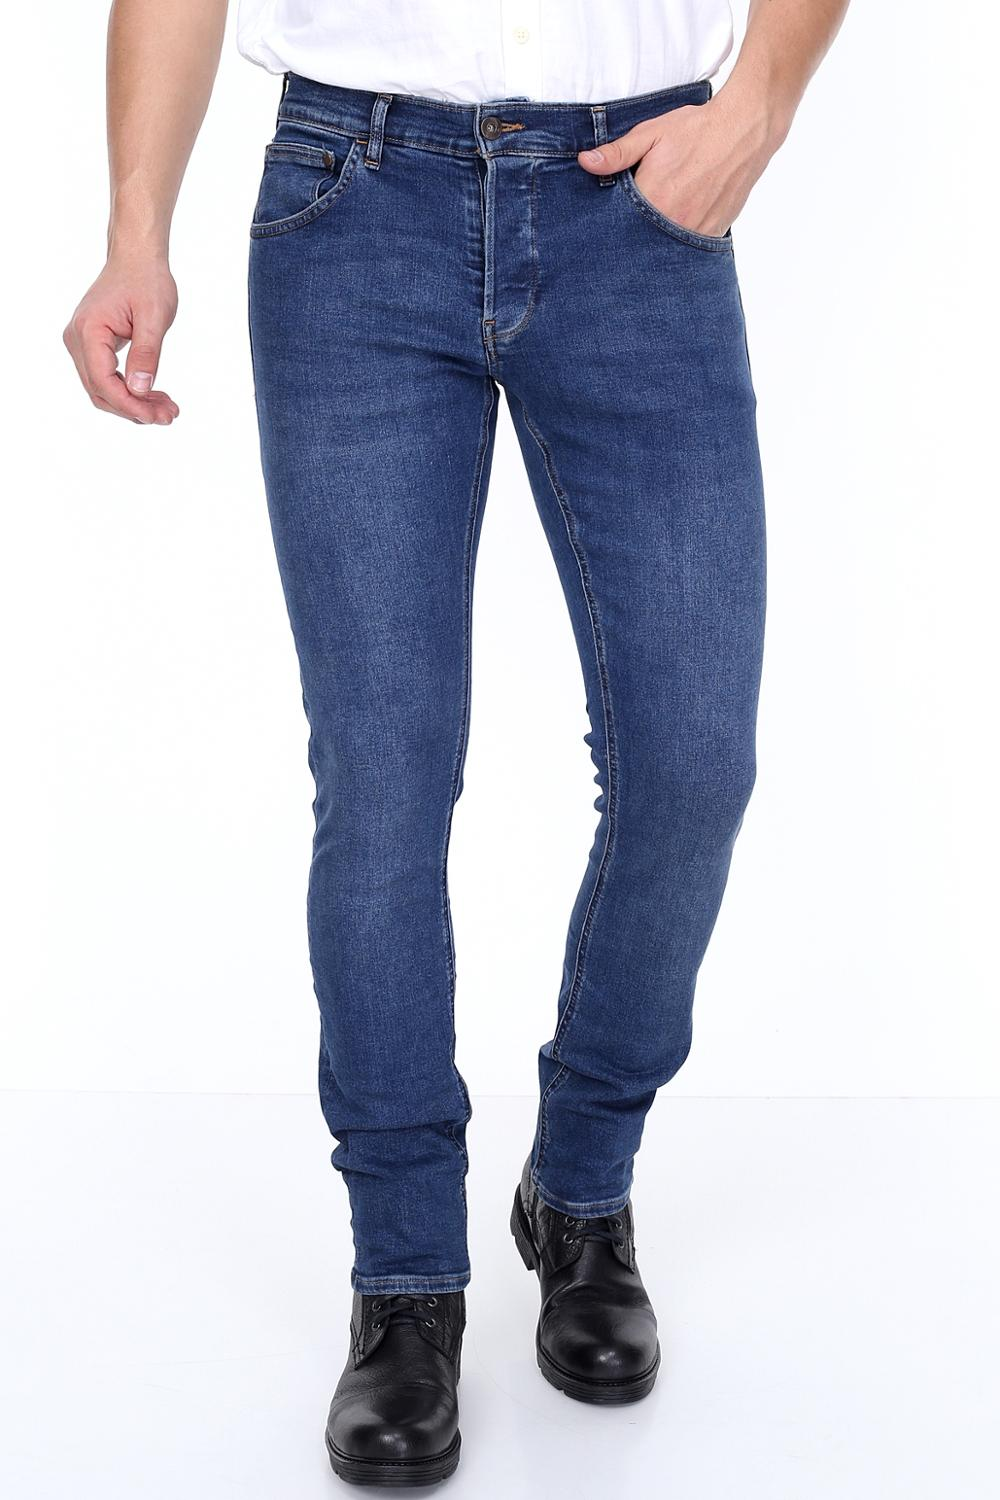 HW 15624-2 Mens Jeans Slim Fit, Stretch, Gift For Men Real European Size, Comfort, Turkish, Стильный дизайн,Homme Denim Style